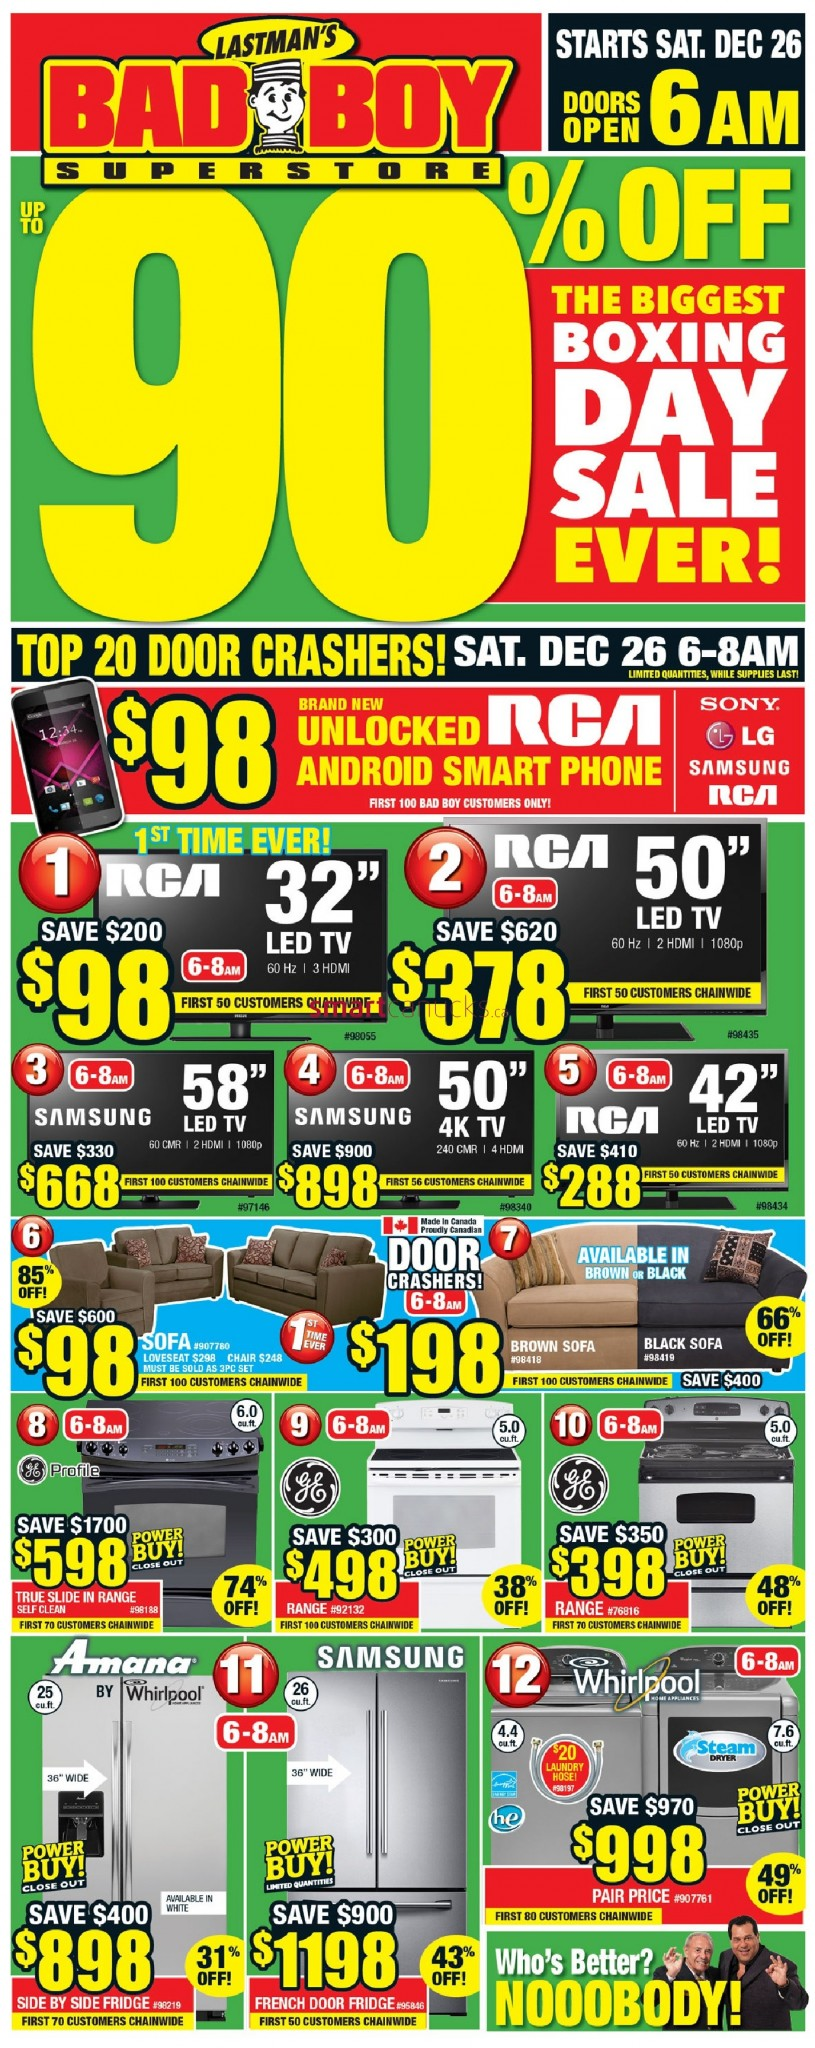 bad boy furniture superstore boxing day boxing week flyer deals 2015 black friday canada. Black Bedroom Furniture Sets. Home Design Ideas